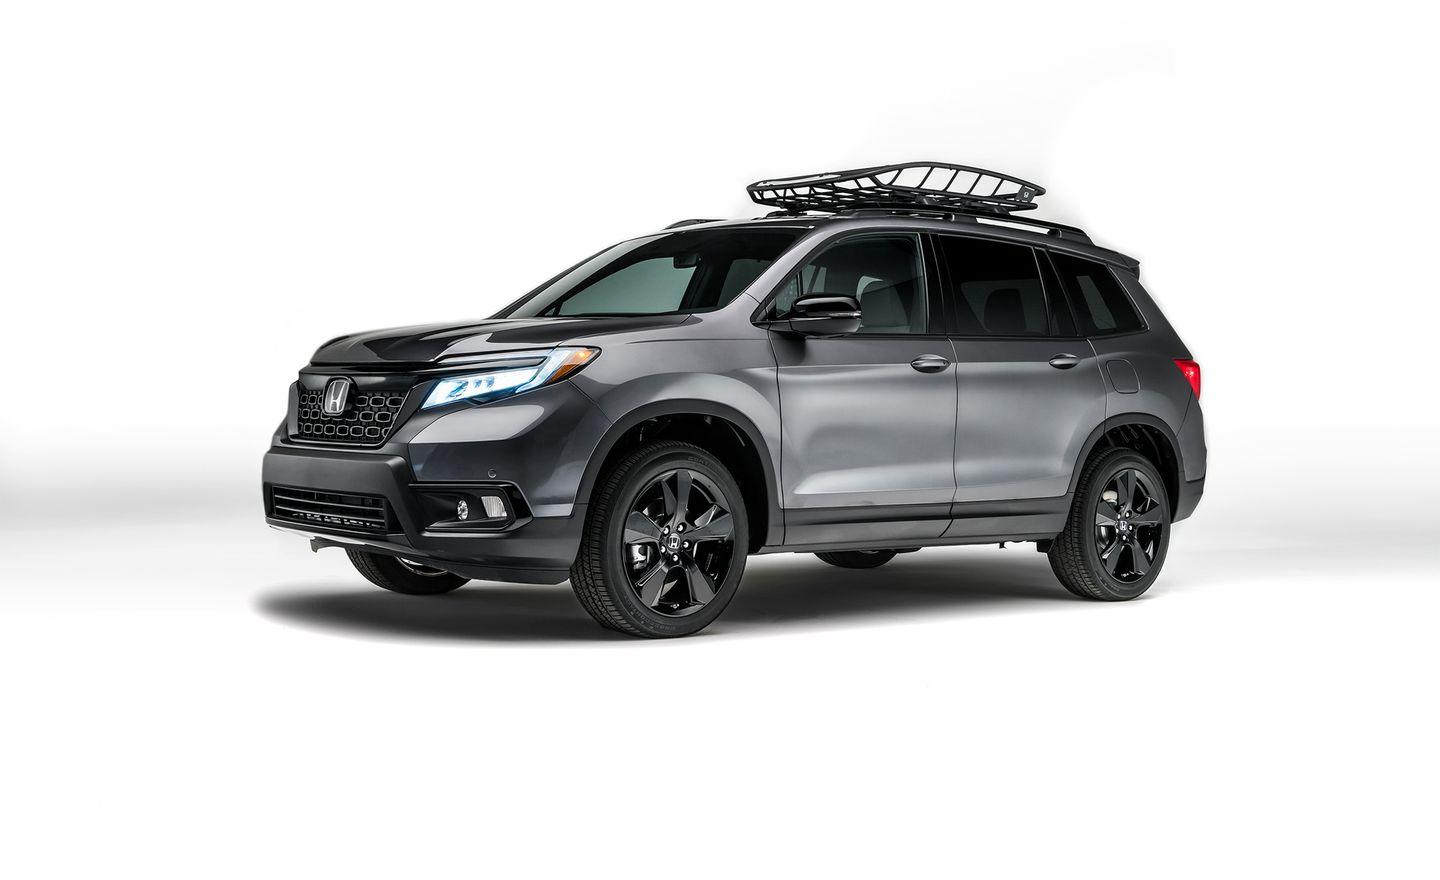 """<p>After a nearly 20-year hiatus, <a href=""""https://www.caranddriver.com/news/2019-honda-passport-photos-info"""" rel=""""nofollow noopener"""" target=""""_blank"""" data-ylk=""""slk:Honda's Passport SUV is back"""" class=""""link rapid-noclick-resp"""">Honda's Passport SUV is back</a>. Unlike the original Isuzu-based Passport, the new model is a homegrown Honda effort. Gone is the old Passport's rugged frame and proper four-wheel-drive equipment; neither ranks highly on mid-size-SUV customers' must-have lists. Instead, the Passport is a two-row crossover spun off the three-row Pilot's hardware. Dimensionally, the Passport is barely smaller than the Pilot, a boon to interior spaciousness; looks-wise, it's less bulbous-looking than its three-row sibling.<em>-Alexander Stoklosa</em></p>"""